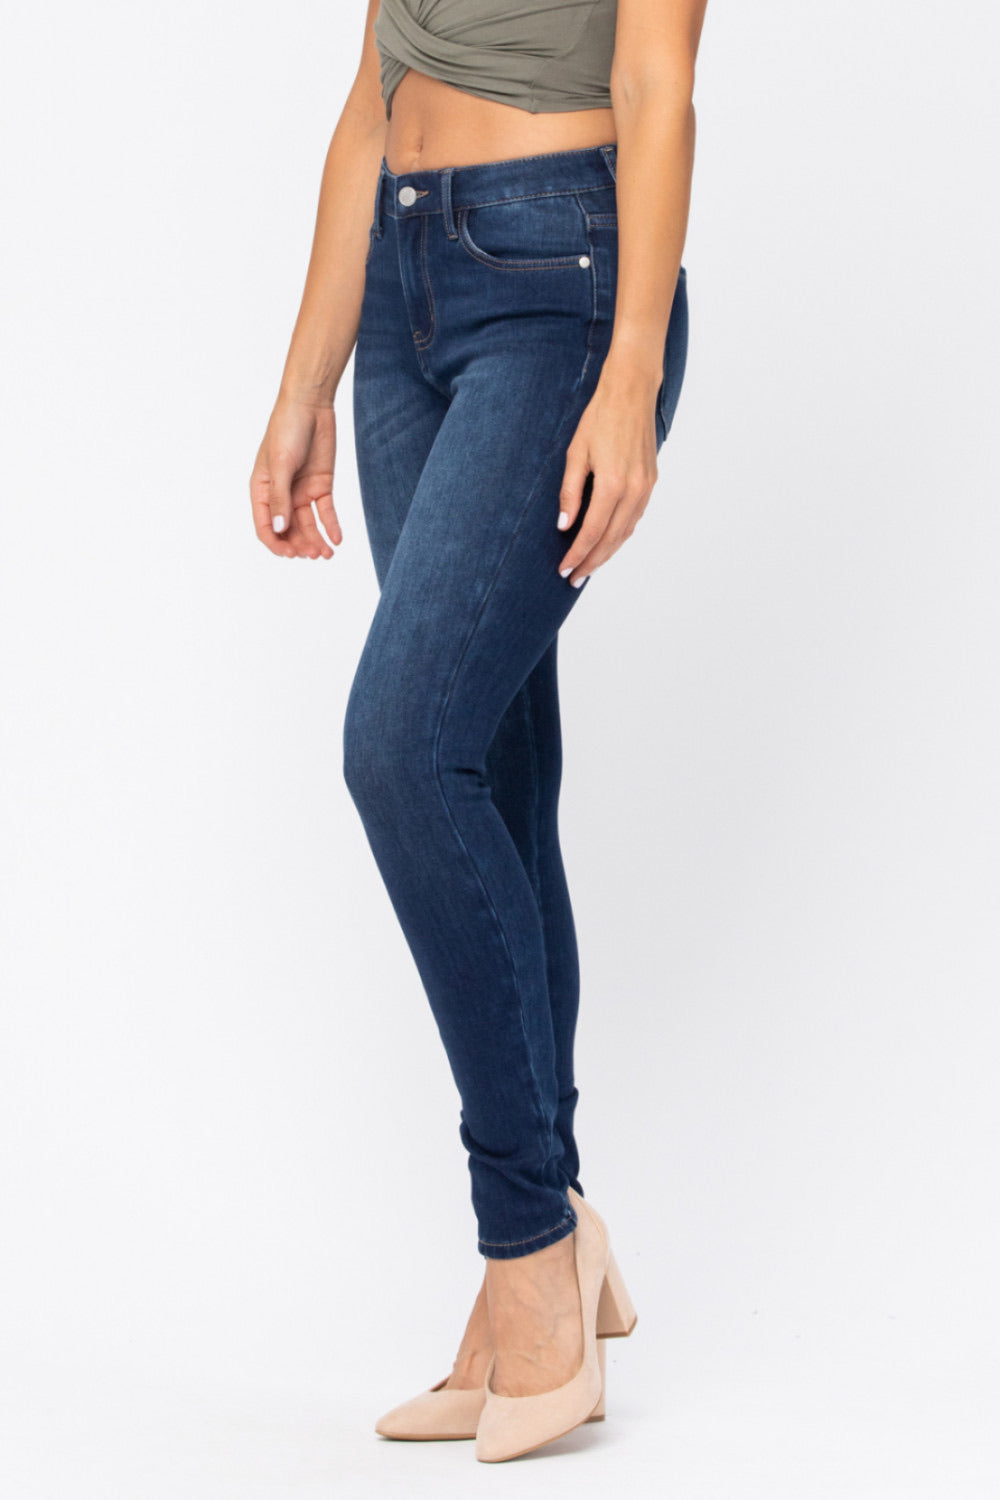 Judy Blue THERMADENIM Non Distressed Skinny Jeans 88113